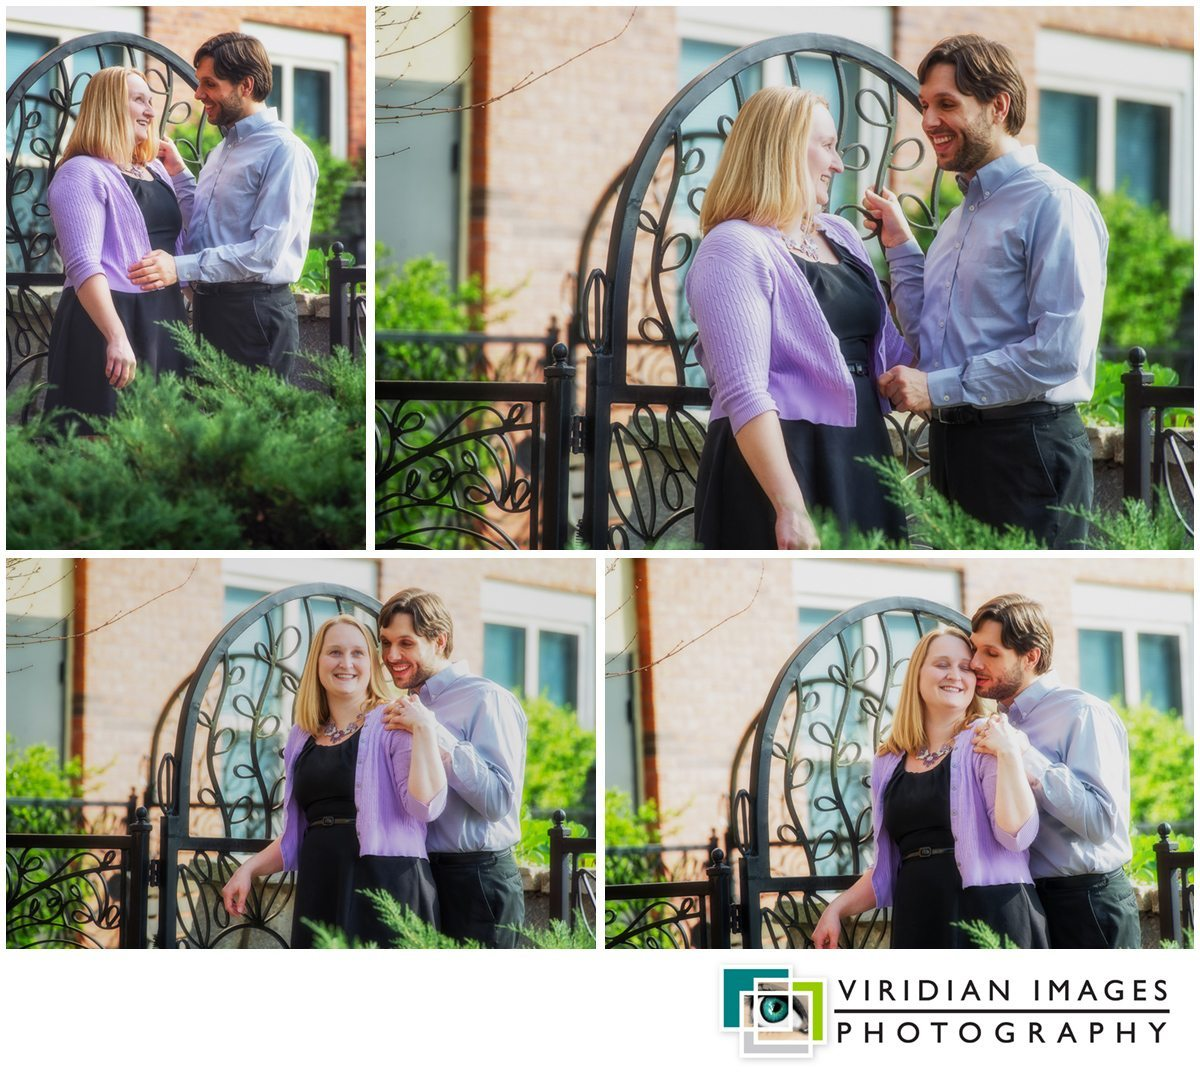 Atlanta_Engagement_ViridianImages_Hillary_Bruce_photo-2